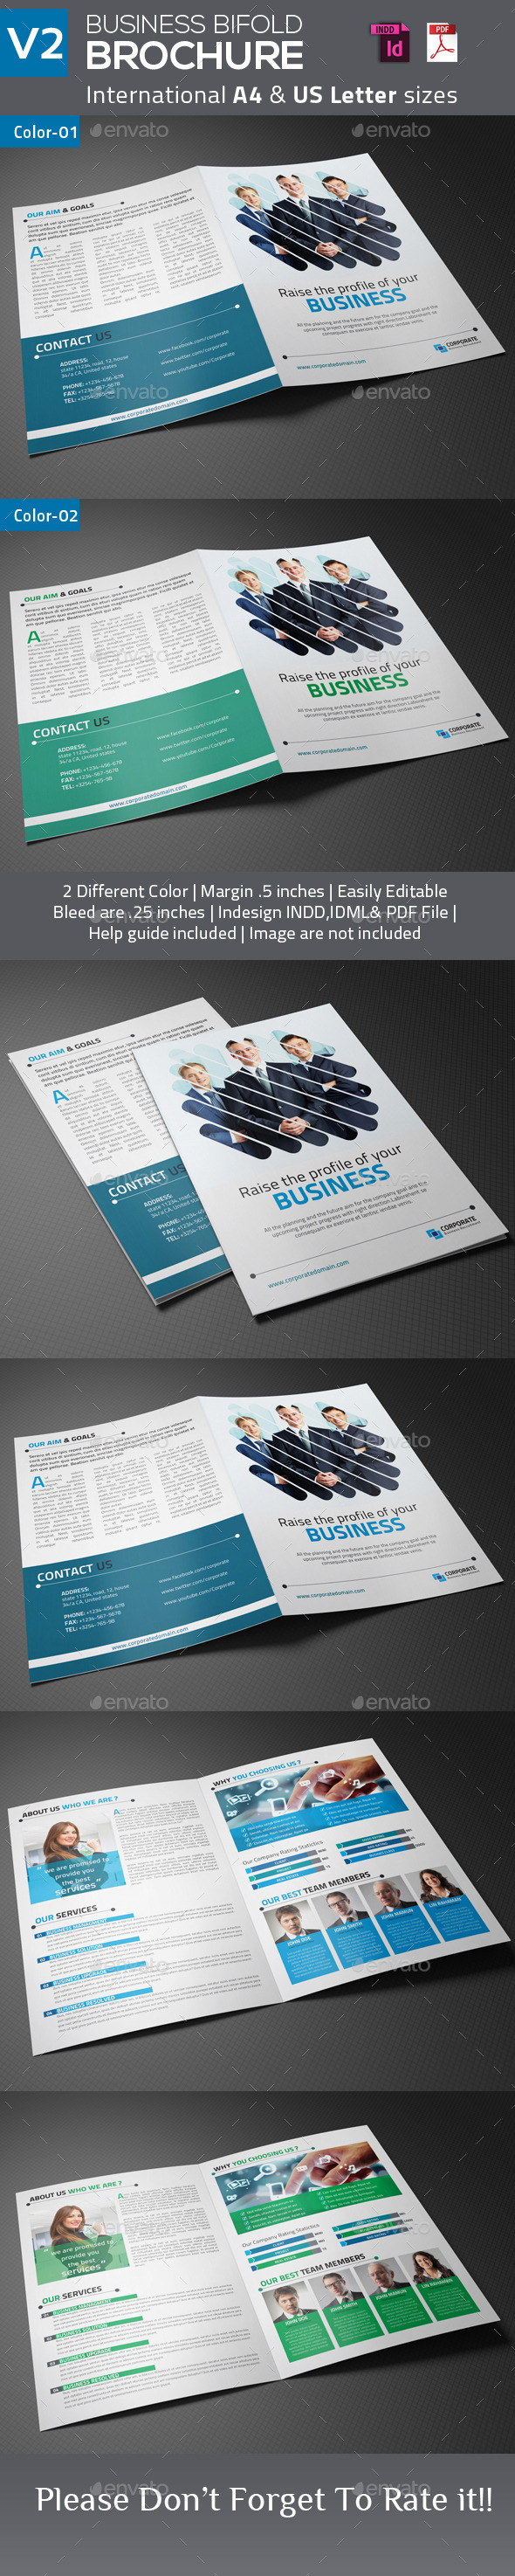 Business Bifold Brochure V2 - Corporate Brochures